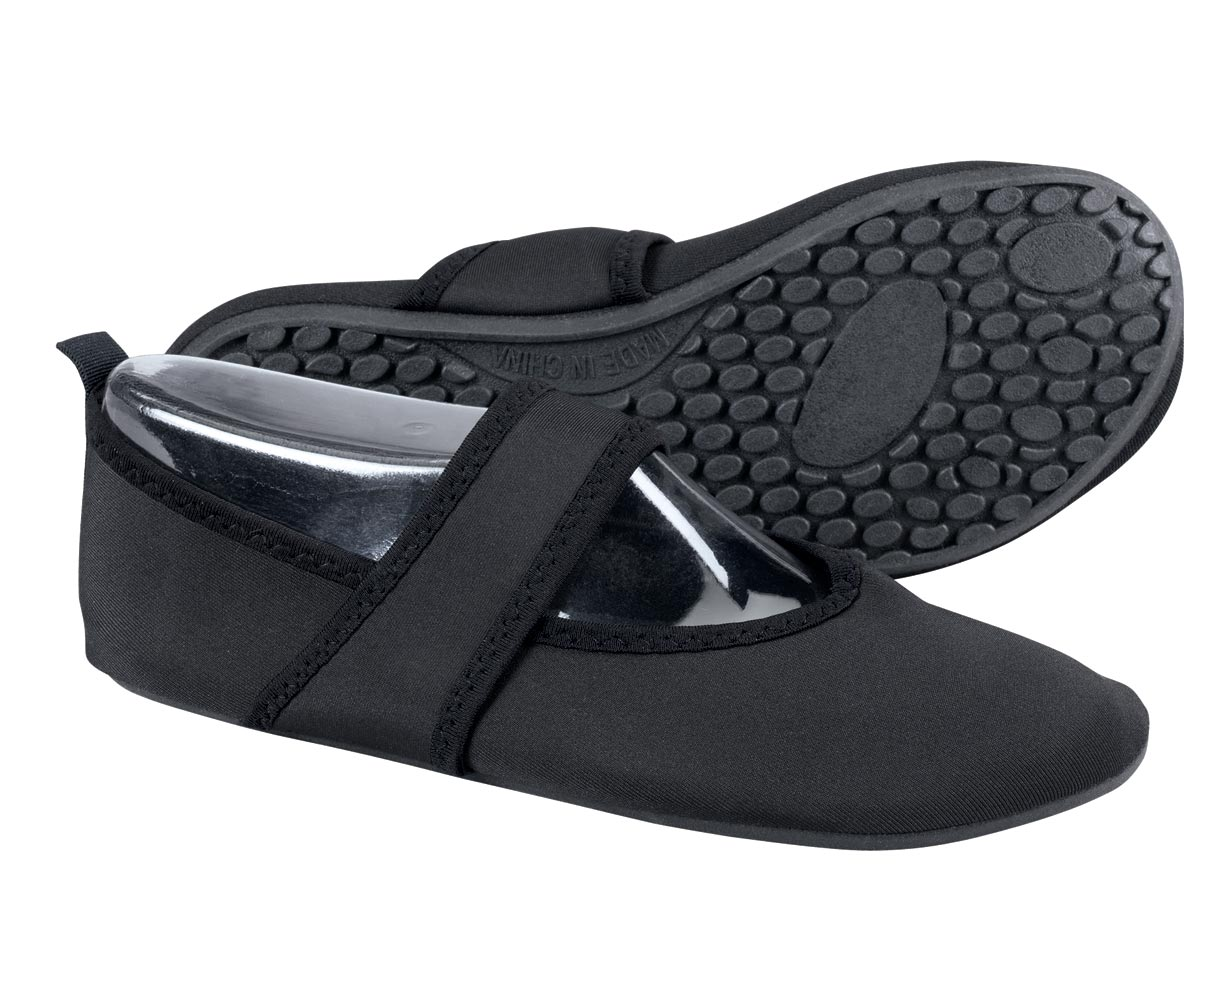 Nufoot Fitness Shoes Nufoot Fitness Shoes combine the comfort of a slipper with a sturdy skid-resistant sole. More firm than other Nufoot soles, this is the perfect athletic shoe to accompany you from every day to every adventure. Where can you wear Nufoot Fitness Shoes? They're perfect for traveling, hitting the beach, or taking a cruise. Slip on a pair for active pursuits like yoga, gym or biking. Protect your bare feet at home, in hotels or anywhere else. They'll feel like sweet relief after you slip off a pair of high heels after a long day, too. The skid-resistant soles help prevent slips, so you can stride with confidence. The seamless neoprene material cushions feet, prevents irritation and avoids chafing of feet. The four-way stretch material ensures a custom fit, and each Nufoot size fits up to three shoe sizes. The lightweight, foldable design is compact for easy carrying. Easy care, just machine wash cold and air dry. Slipper style Nufoot shoes designed for active pursuitsIdeal for travel, sports and at homeBeach, yoga, gym, biking and moreInstant relief for high heelsSkid-resistant soles are more firm than other Nufoot stylesSeamless neoprene material cushions feet, prevents irritation and avoids chafing of feetFour-way stretch material ensures a custom fitEach Nufoot size fits up to three shoe sizesEasy care, hand wash and air dryMade from 100% spandex, with a rubber sole and EVA insoleSizes: Small (5 1/2 - 6 1/2), Medium (7-8), Large (8 1/2 - 9 1/2) and XL (10-11).